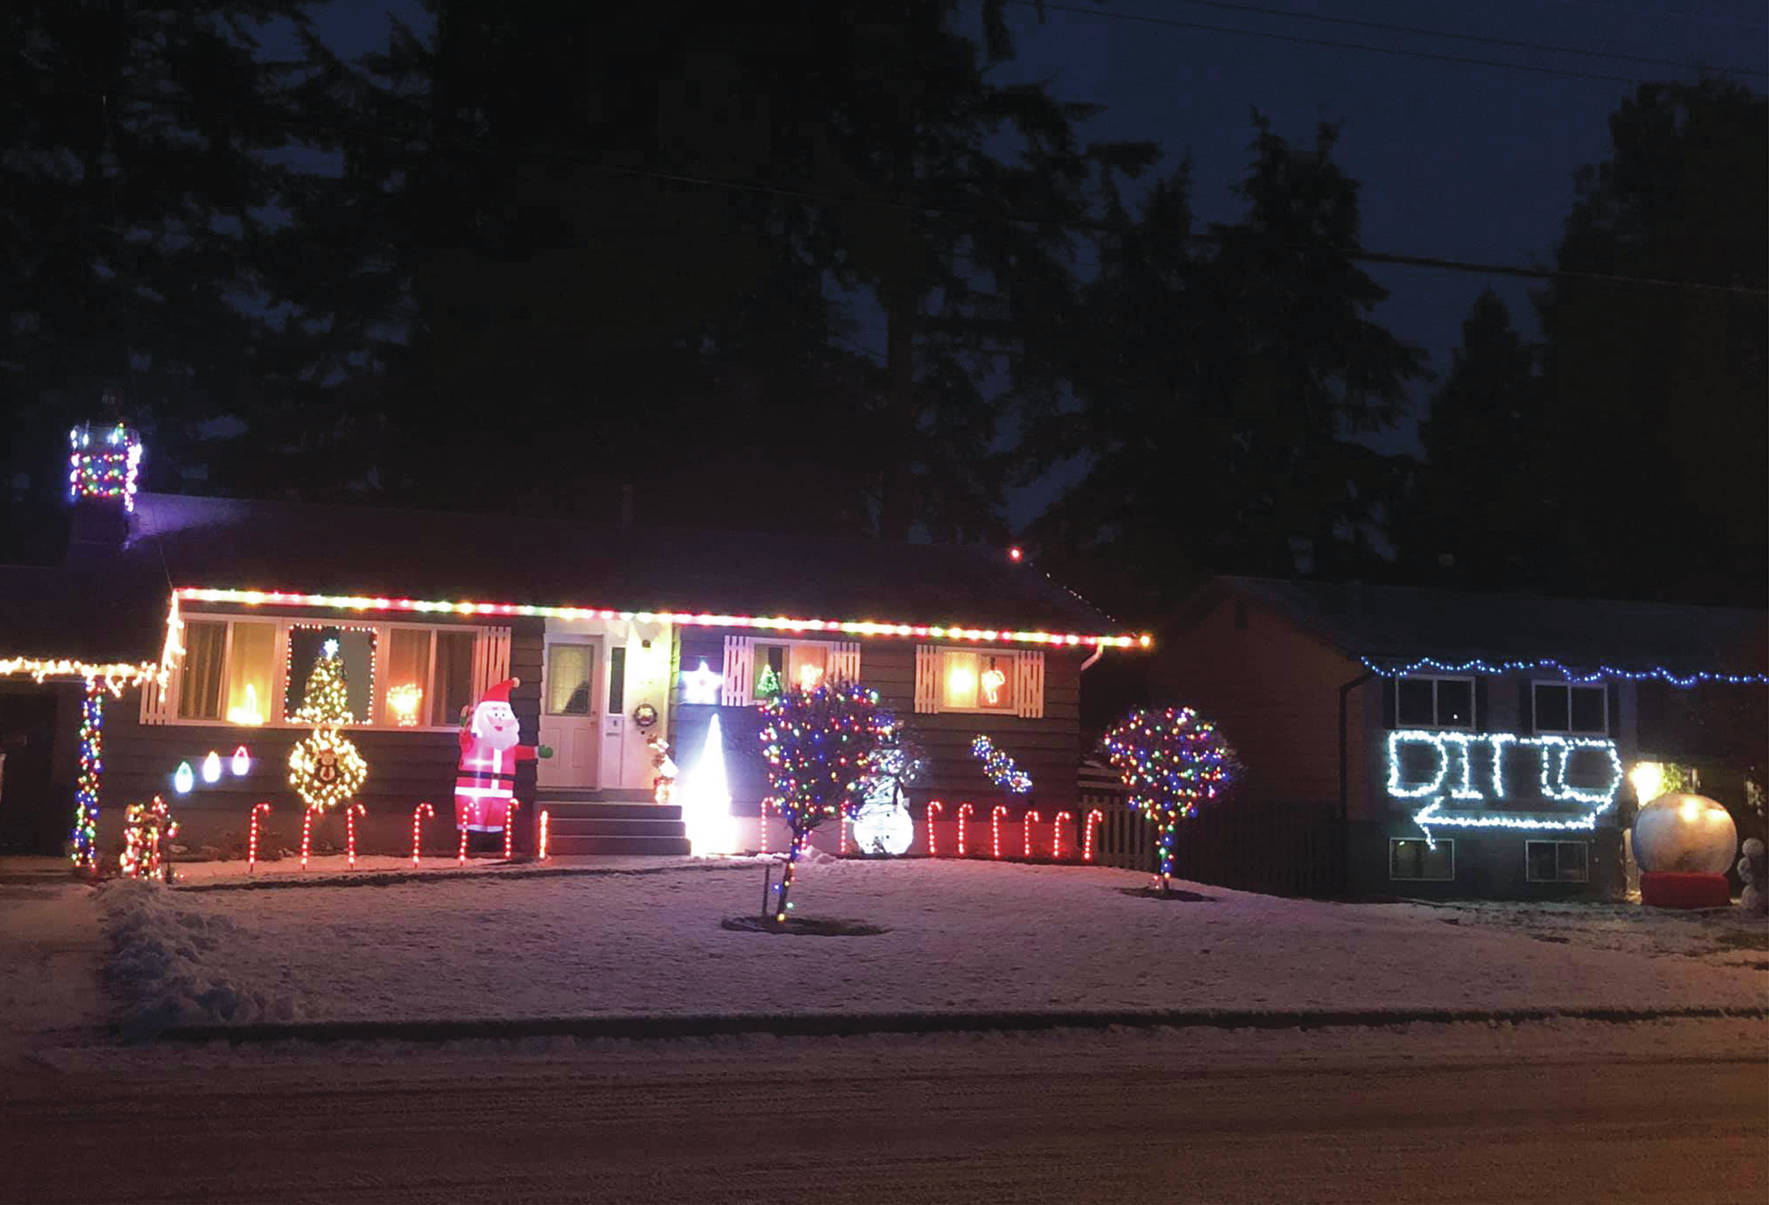 PHOTOS: Competitive Christmas light display takes sarcastic turn in Princeton